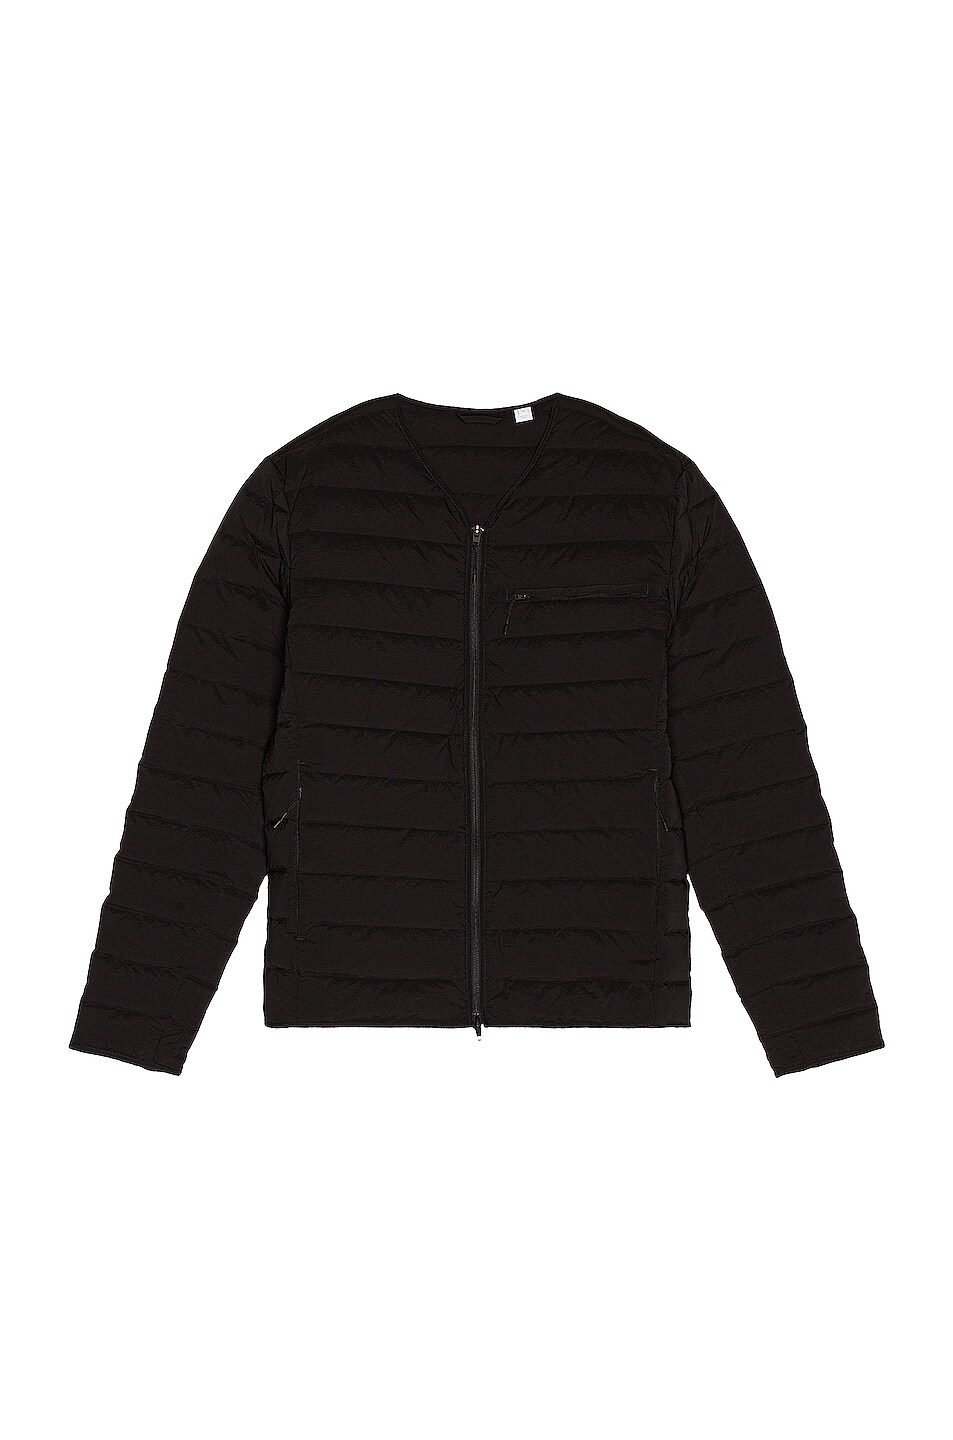 Image 1 of Y-3 Yohji Yamamoto Light Down Liner Jacket in Black